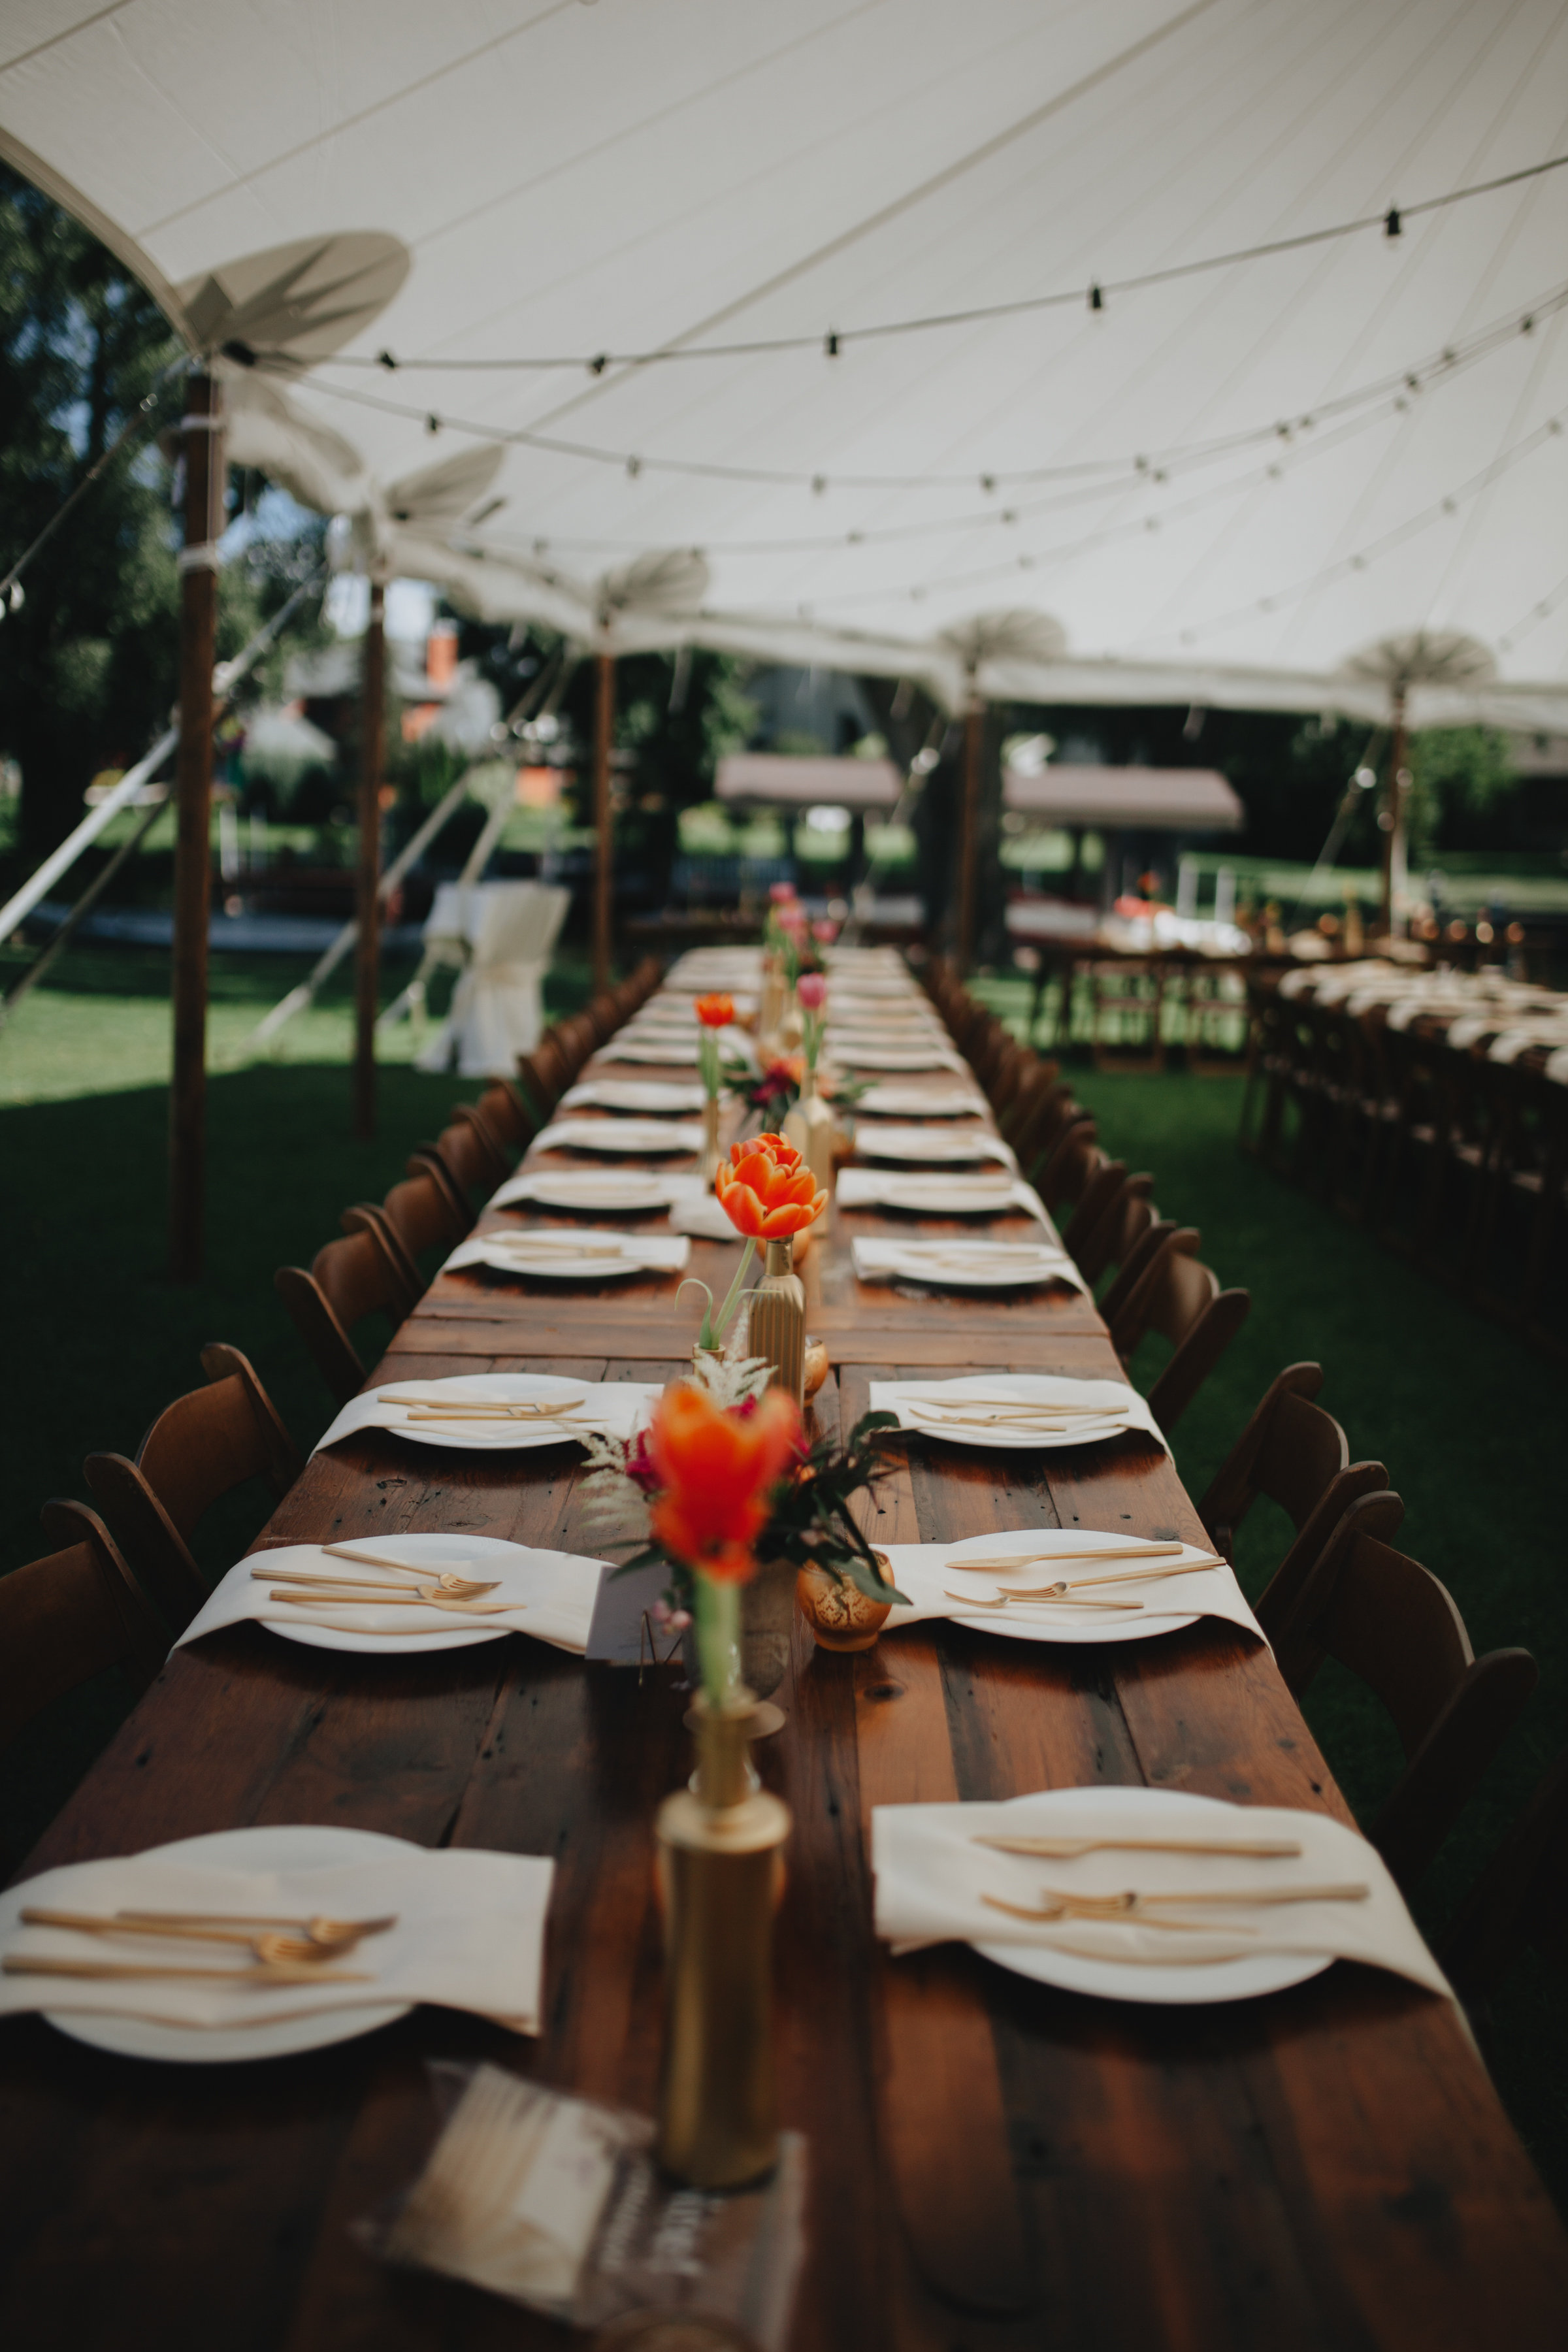 ALaCrateRentals-Audre-Rae-Photography-Harvest-Table-Tented-Venue